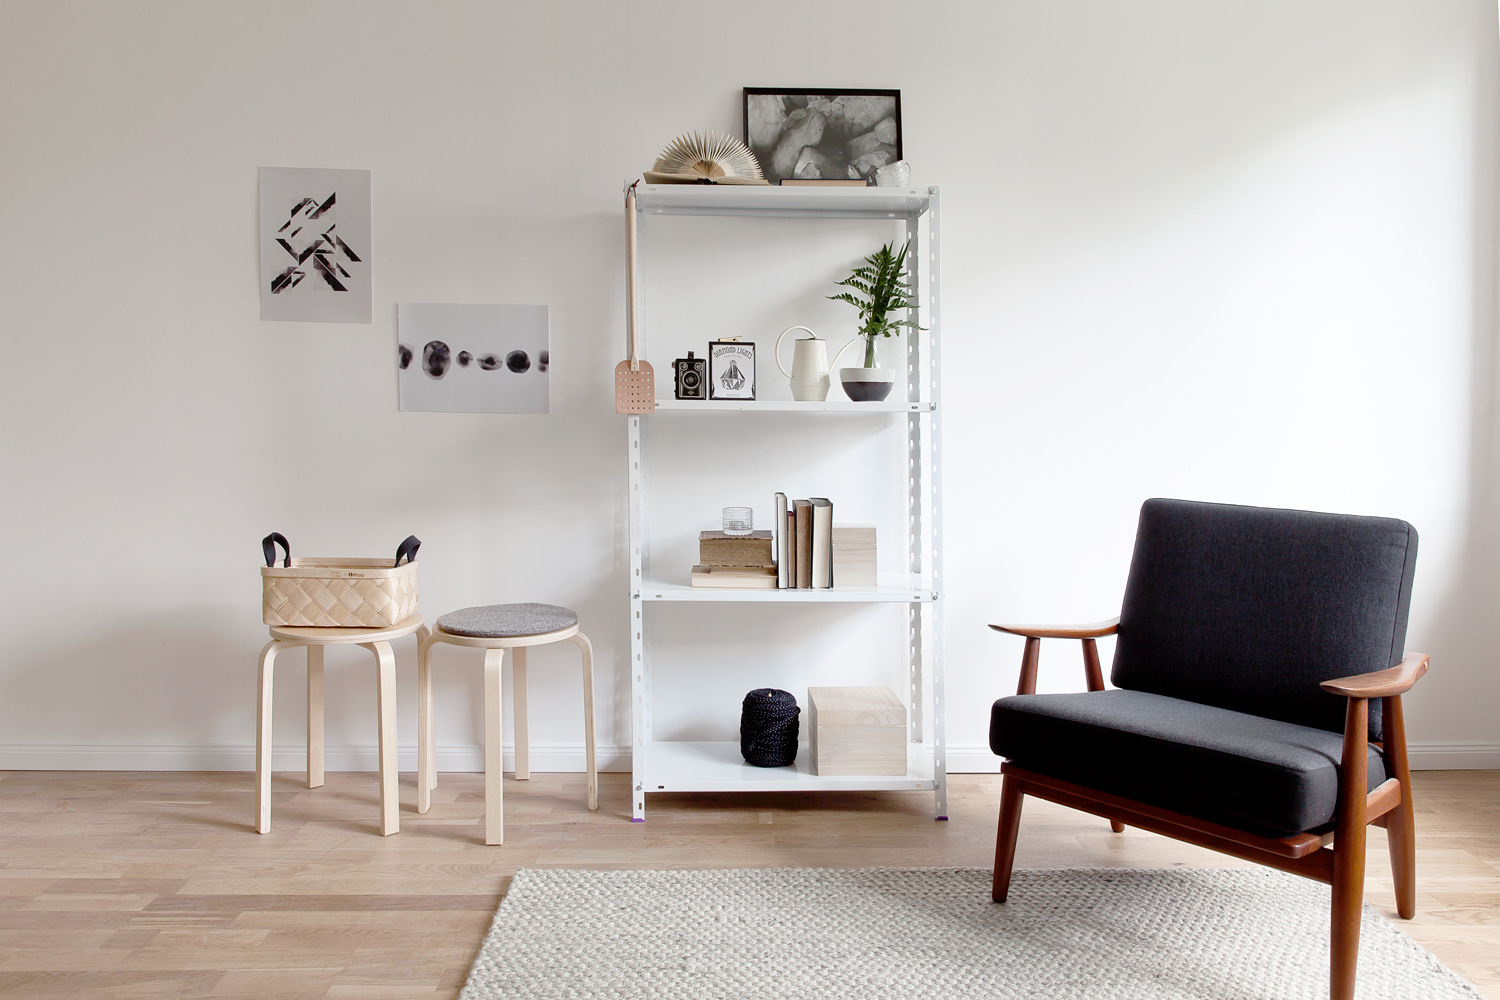 A Berlin mix of vintage and modern - COCO LAPINE DESIGNCOCO LAPINE ...